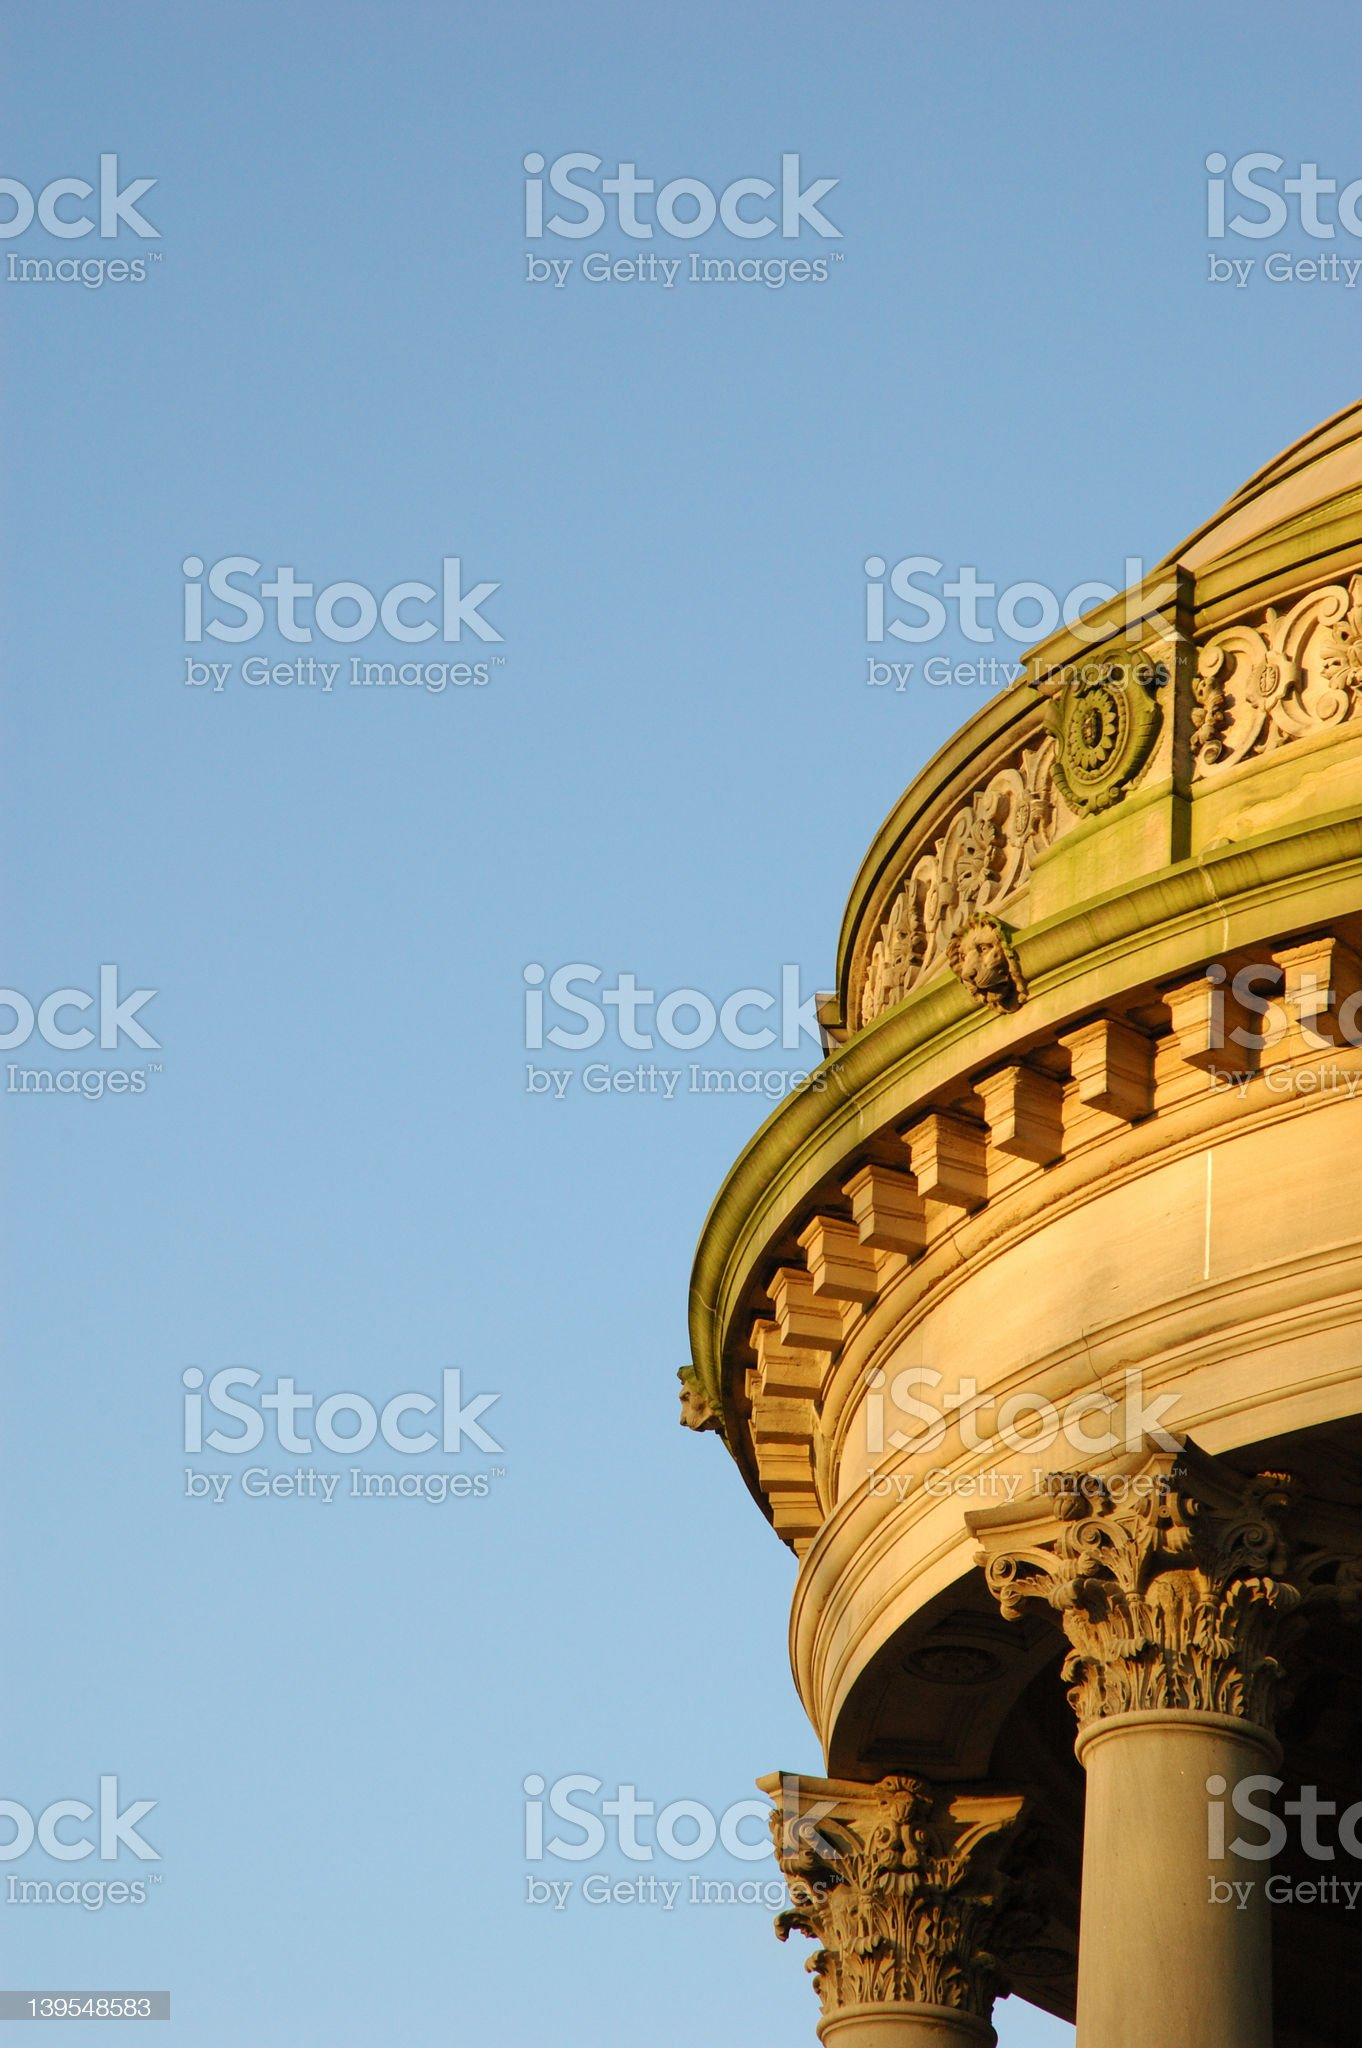 Classical order royalty-free stock photo